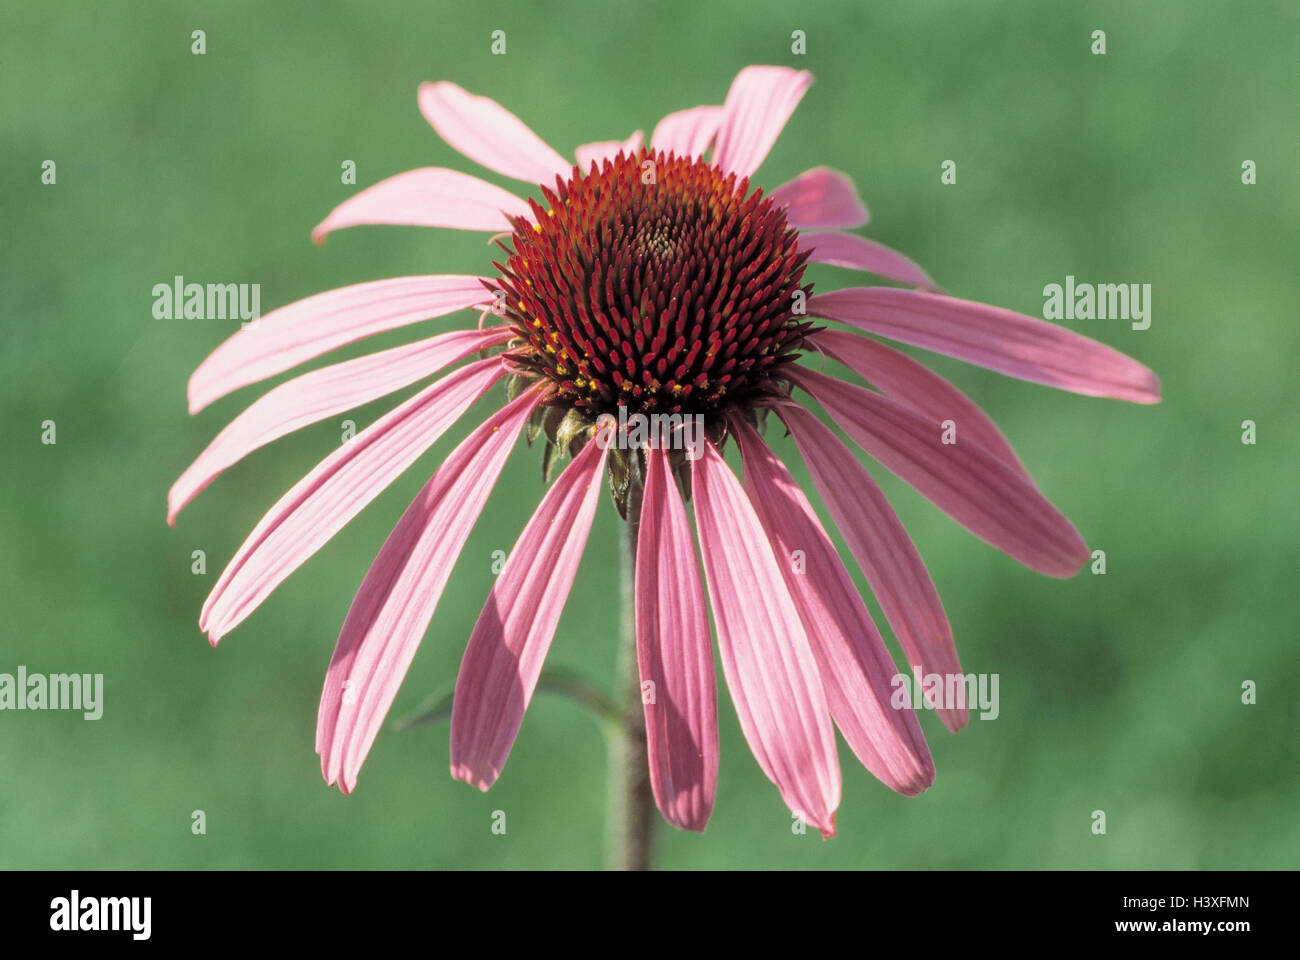 Medicinal plants, red solar hat, Echinacea purpurea, detail, blossom plants, medicinal plants, herbs, medicament - Stock Image